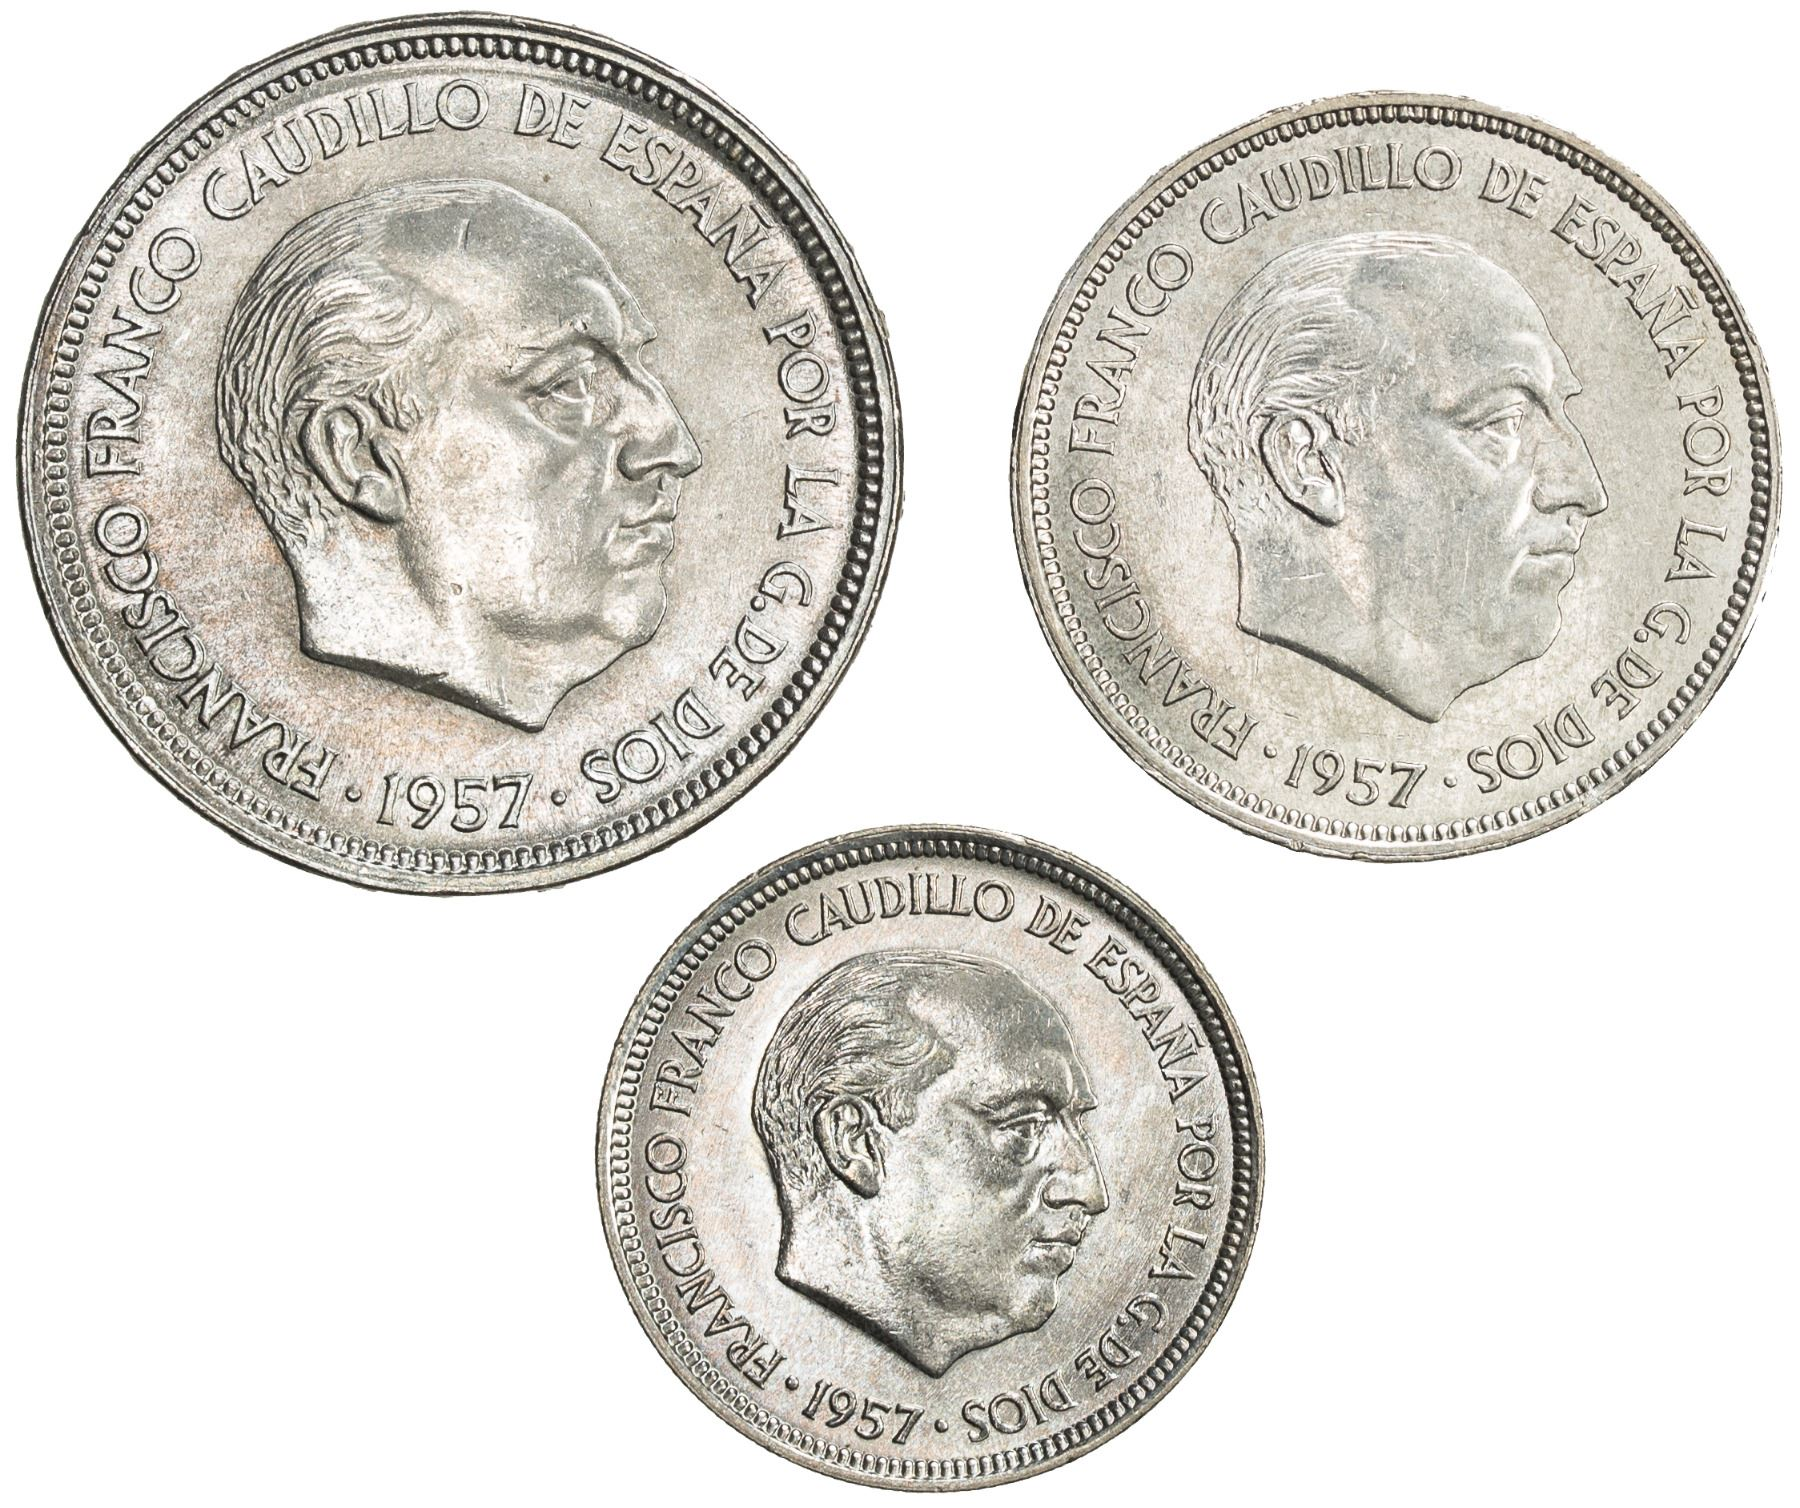 SPAIN: SET of three coins for the 2nd Ibero-American